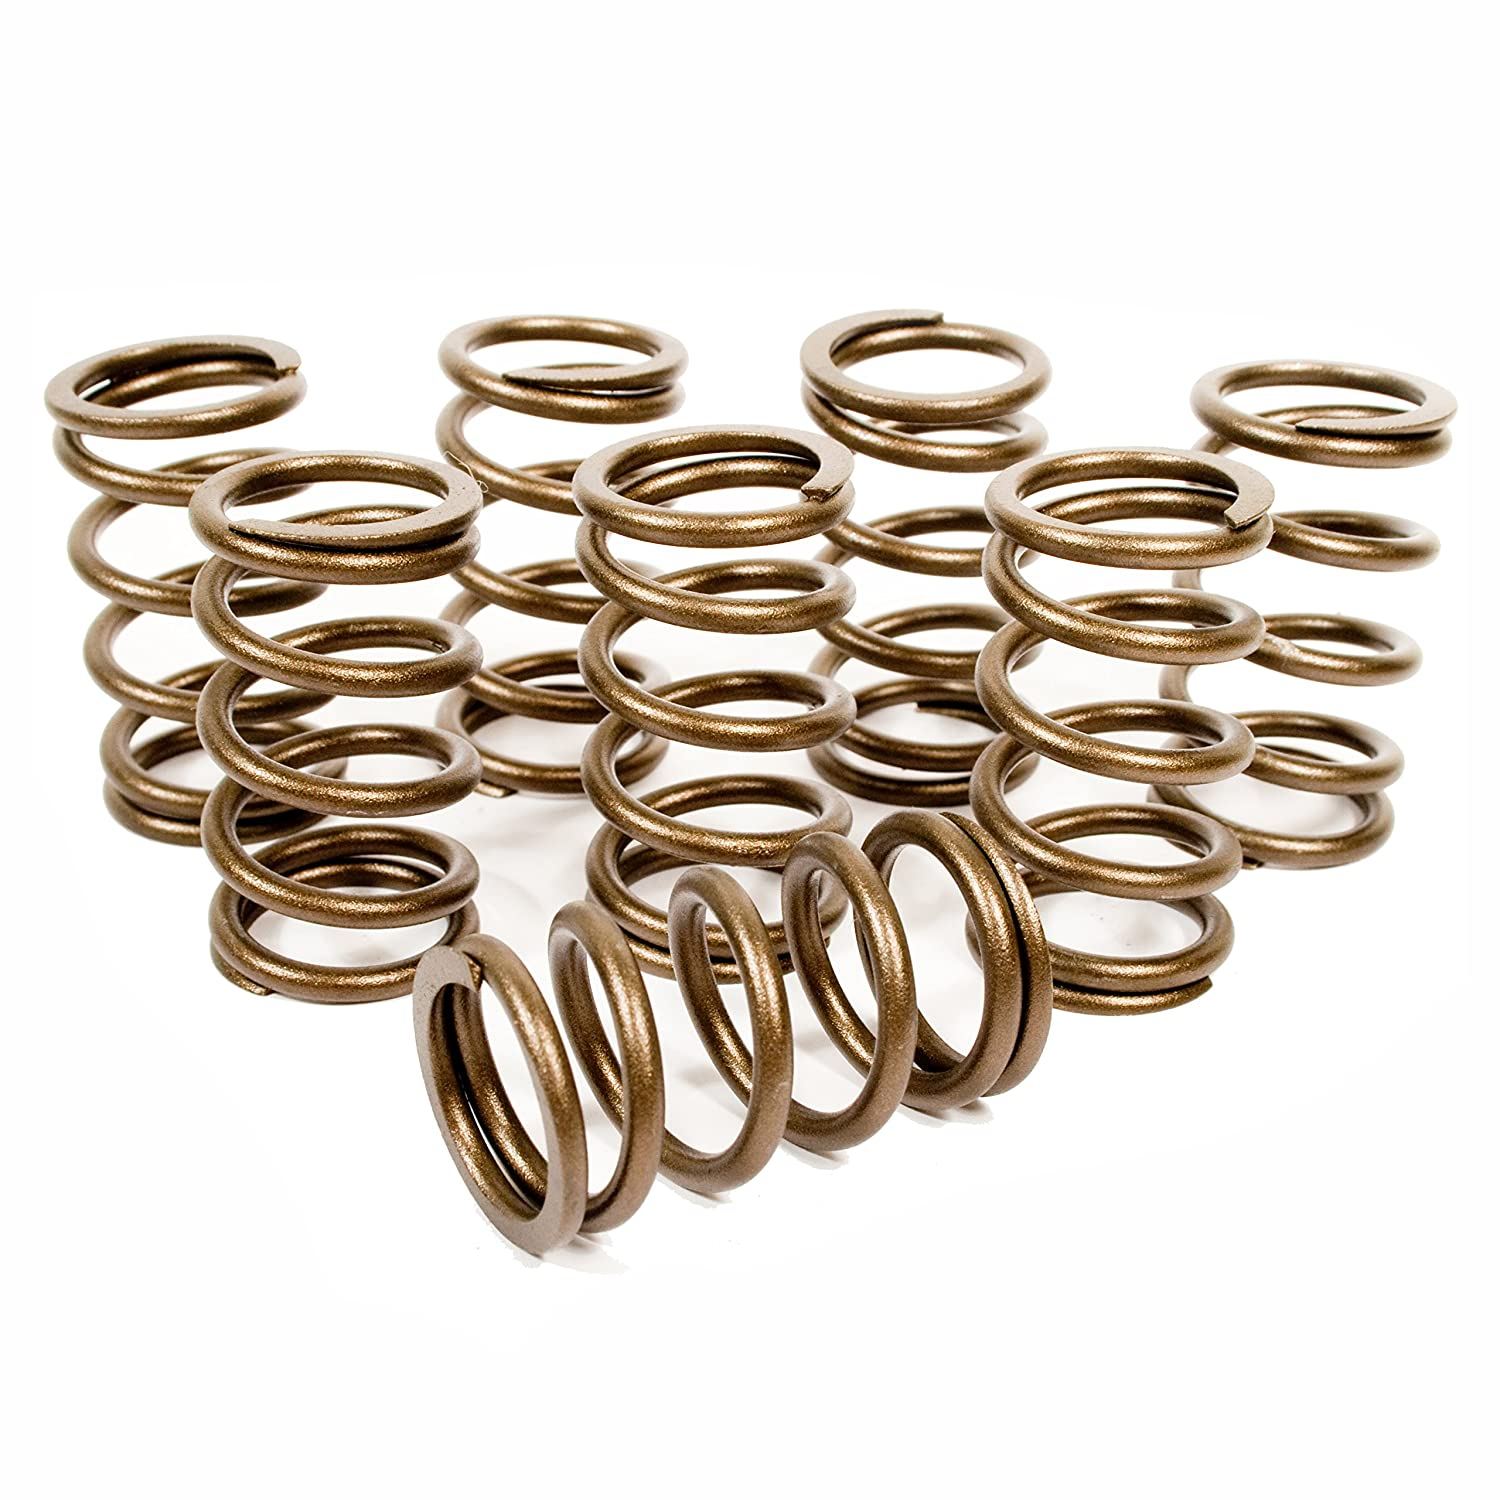 Engle 6002 Performance Hi-Rev Single Valve Springs For Vw Air-cooled Engines